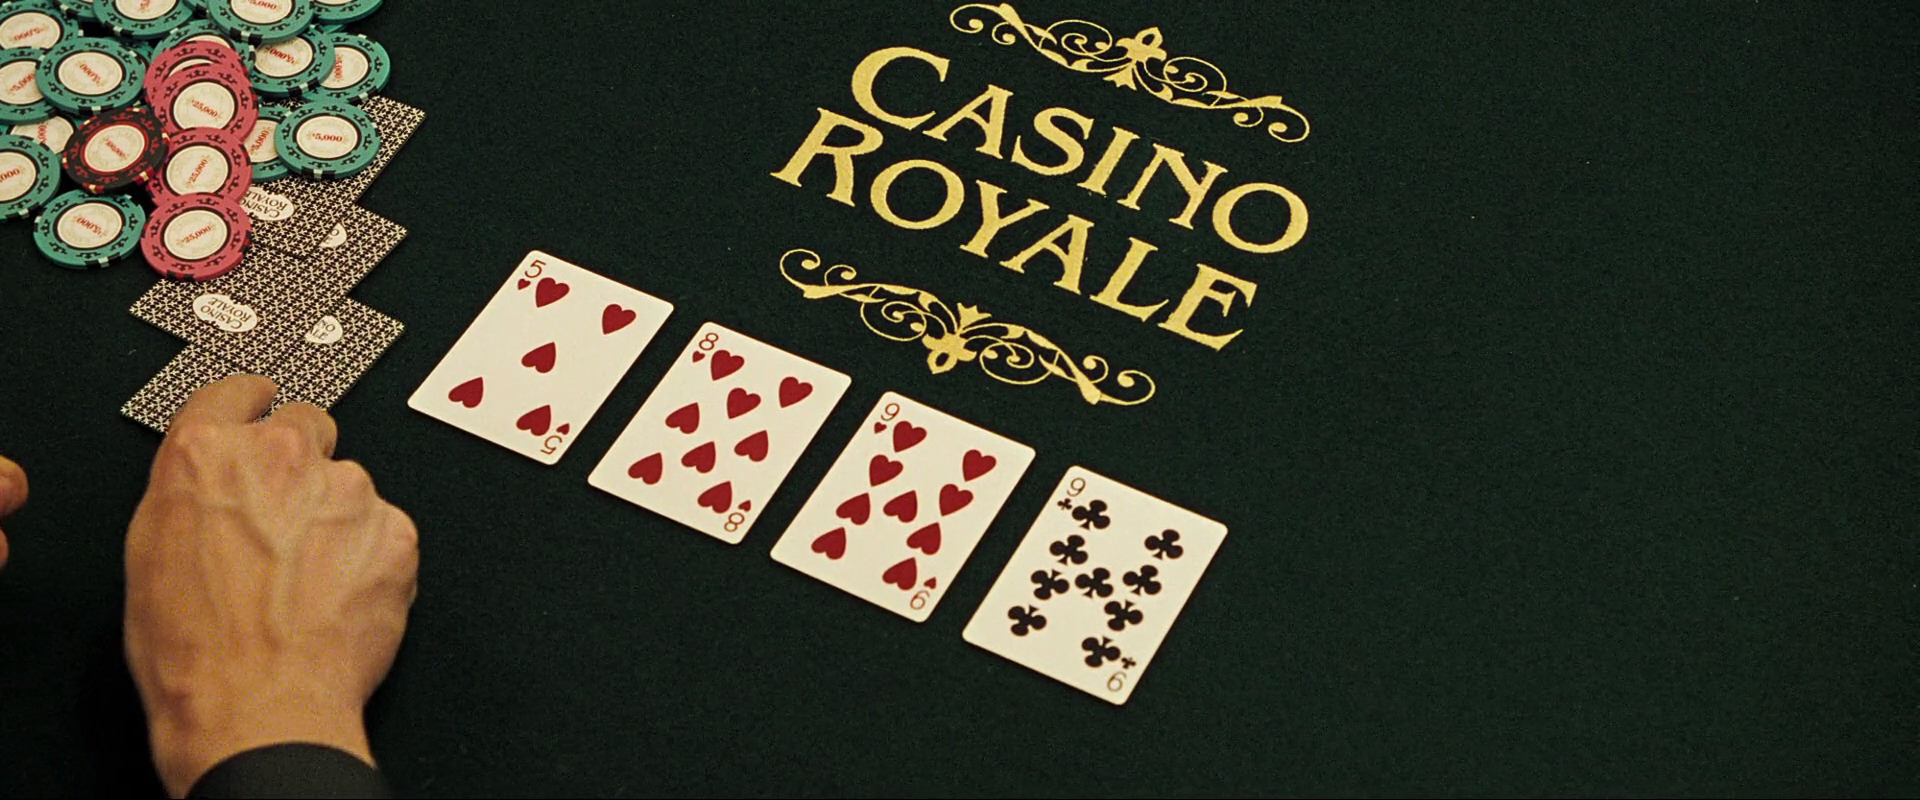 casino royale online movie free hades symbol